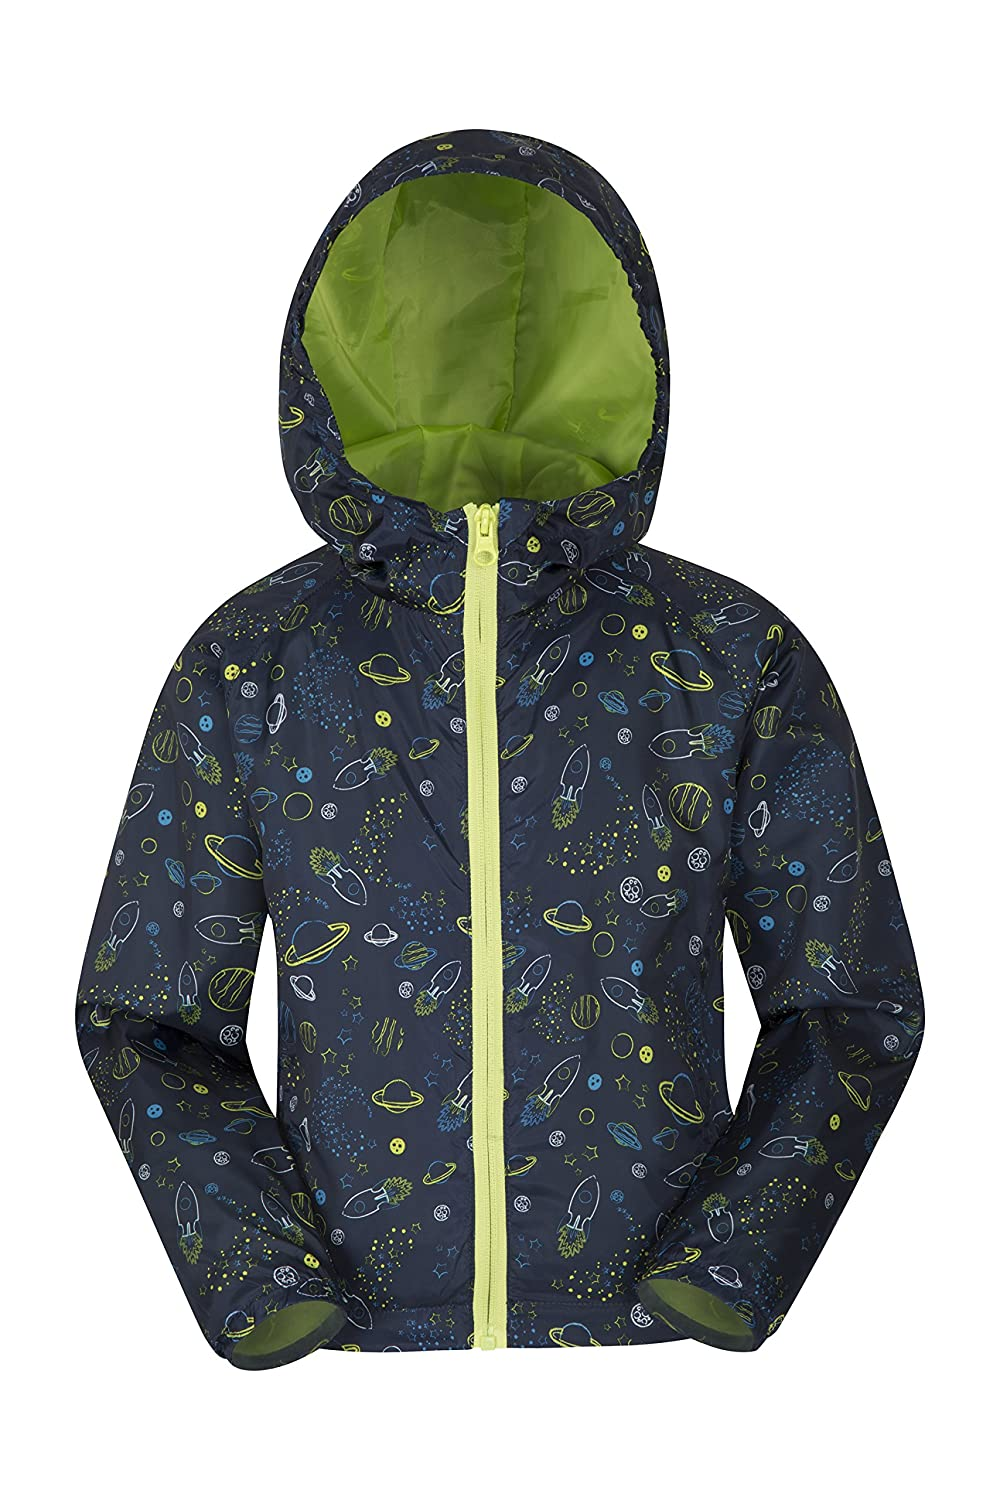 Mountain Warehouse Gizmo Kids Shell Jacket - Spring & Summer Coat Two Tone Blue 3-4 years 023909205005